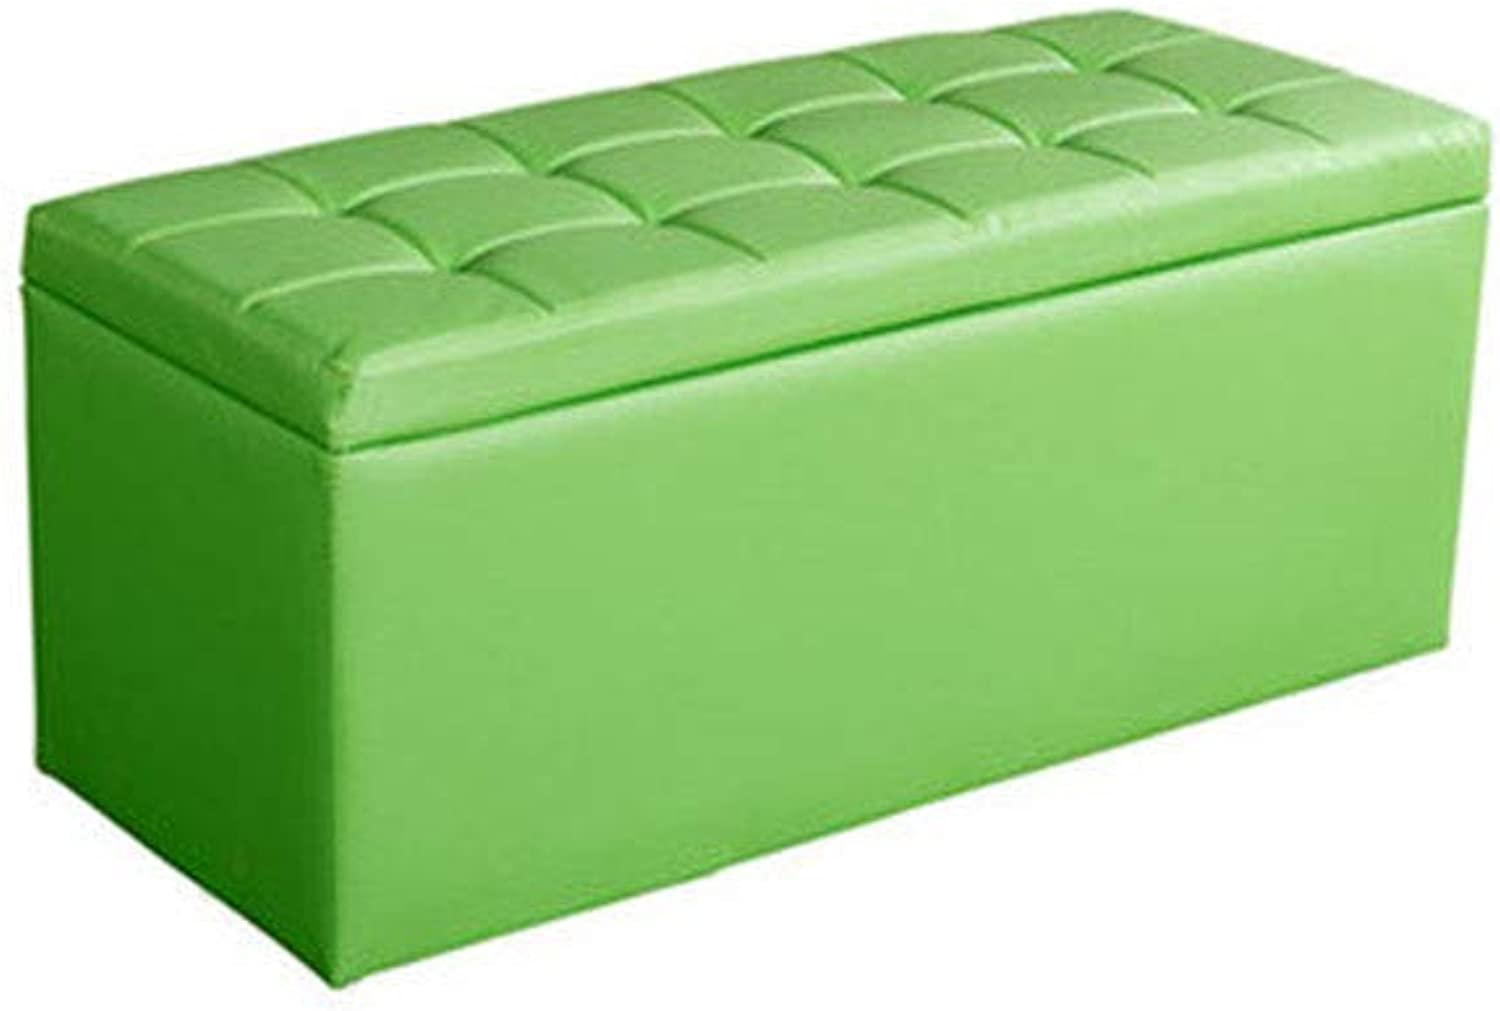 Sofa shoes Bench, Artificial Leather and Square Wooden Support Frame Multi-Function Storage Box for Commercial Clothing Store, shoes Store (color   Green, Size   40  40  40cm)